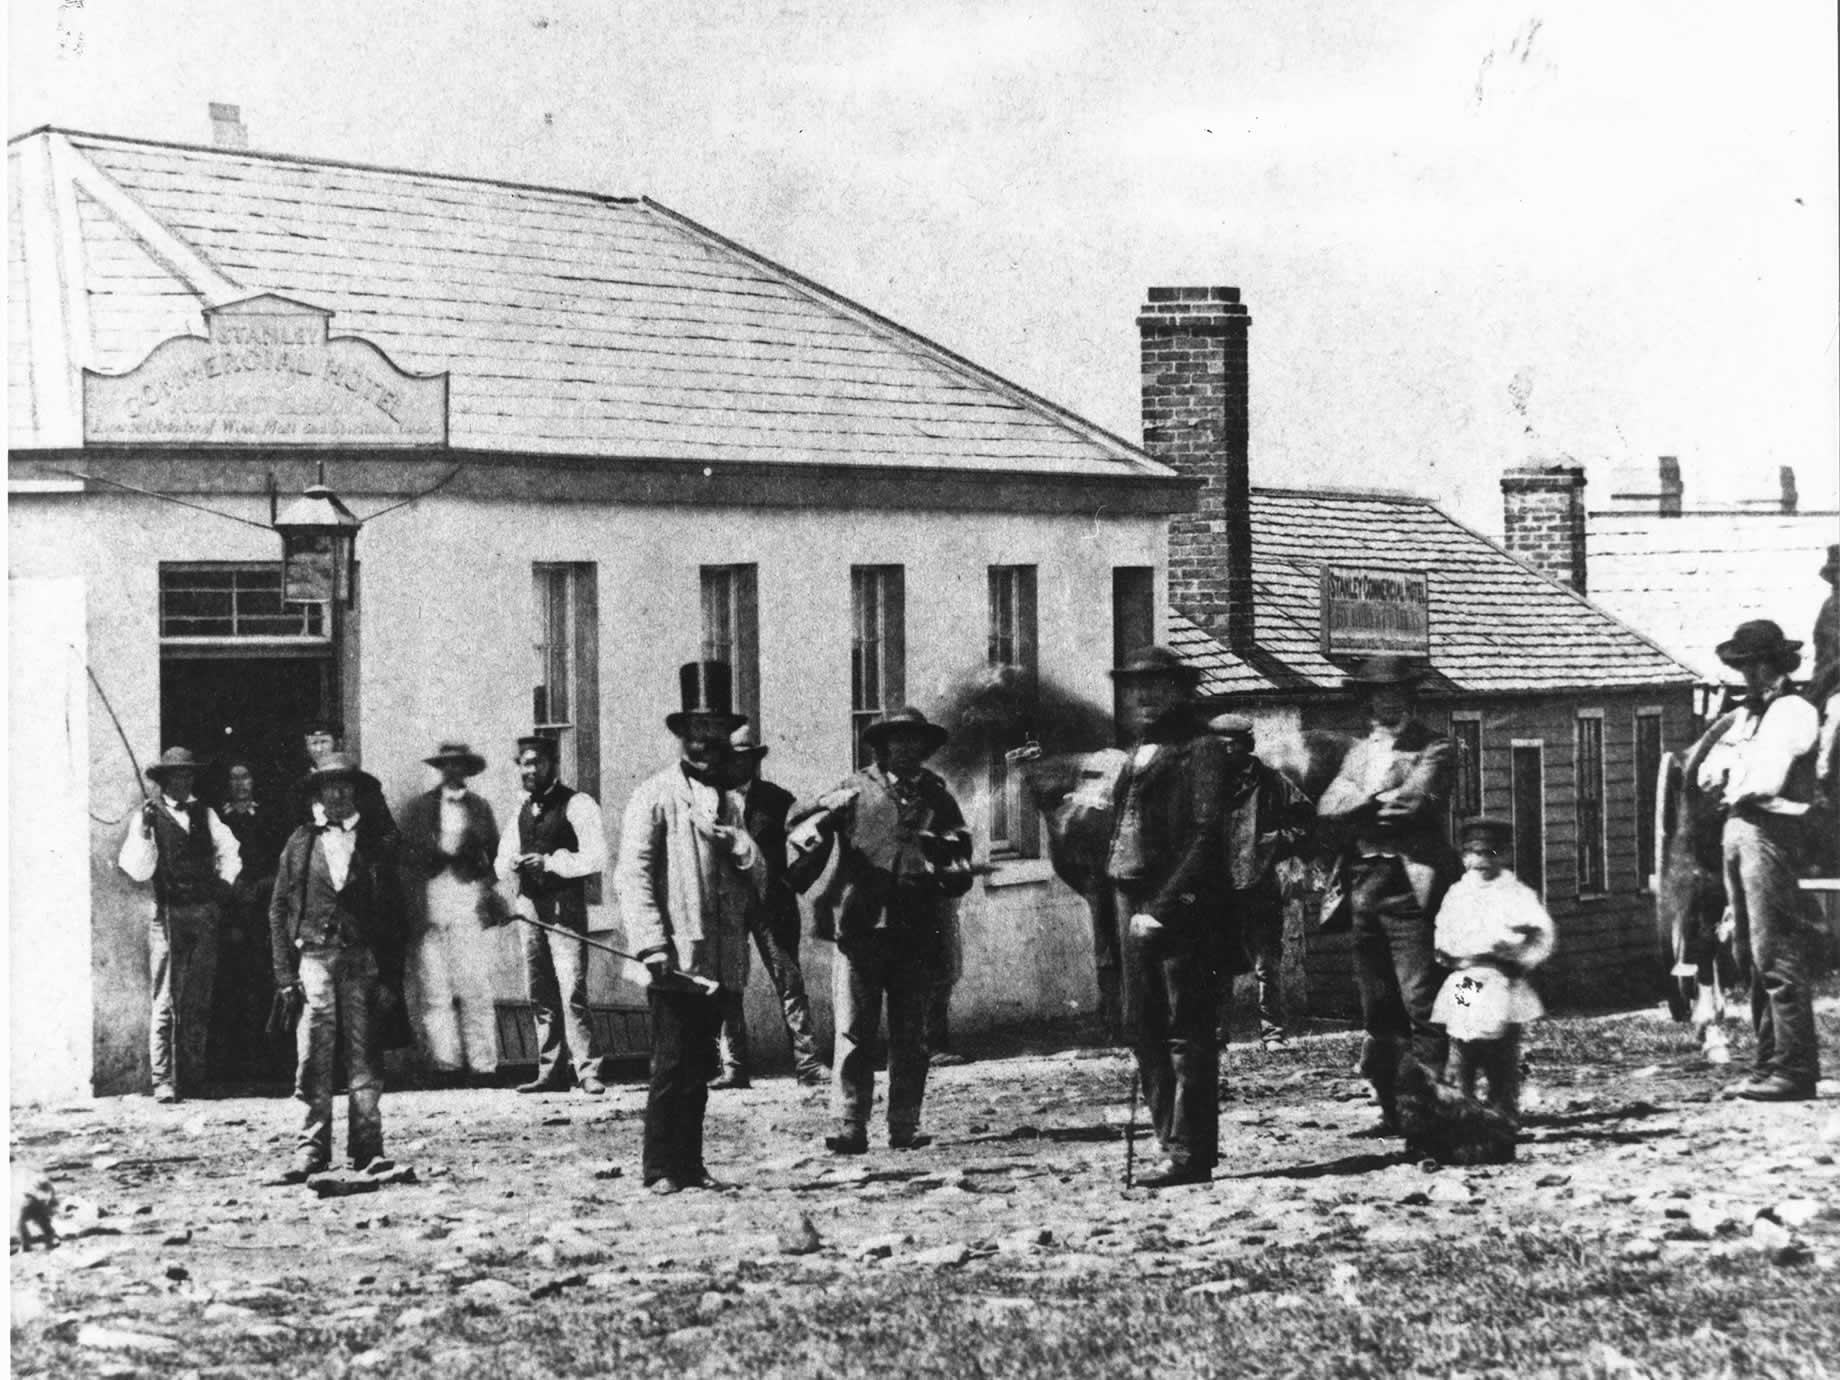 VDL Company tenants gathered outside the Commercial Hotel, 1858